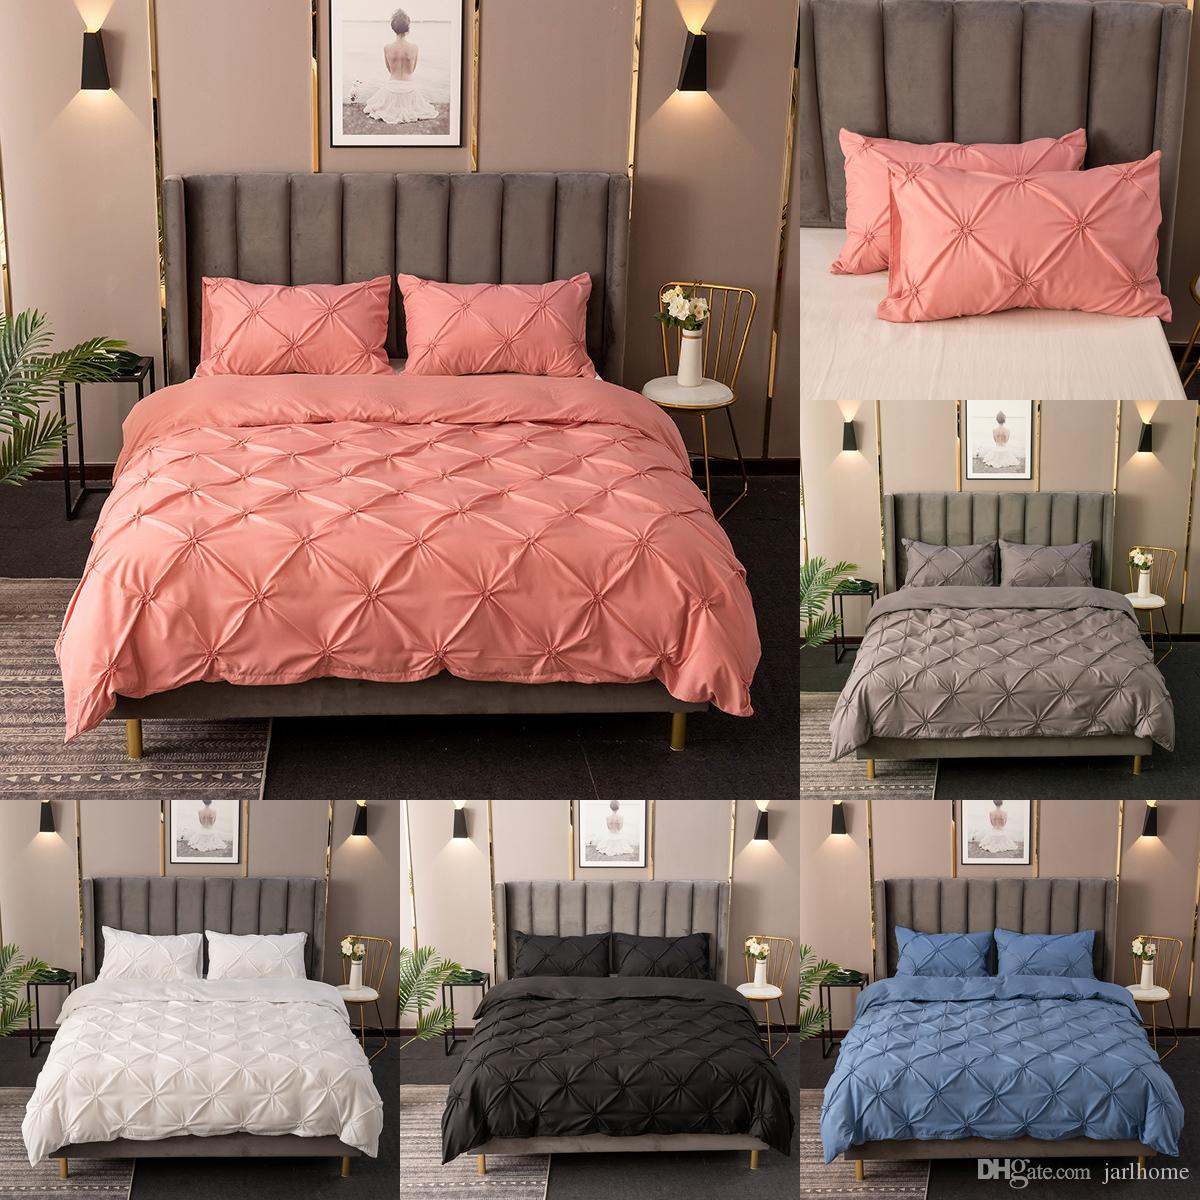 Jarl Home Three-dimensional Embossing Bedding Sets with Zipper Elastic Solid Color Quilt Cover and Pillowcases 3 Pieces Sheet Set